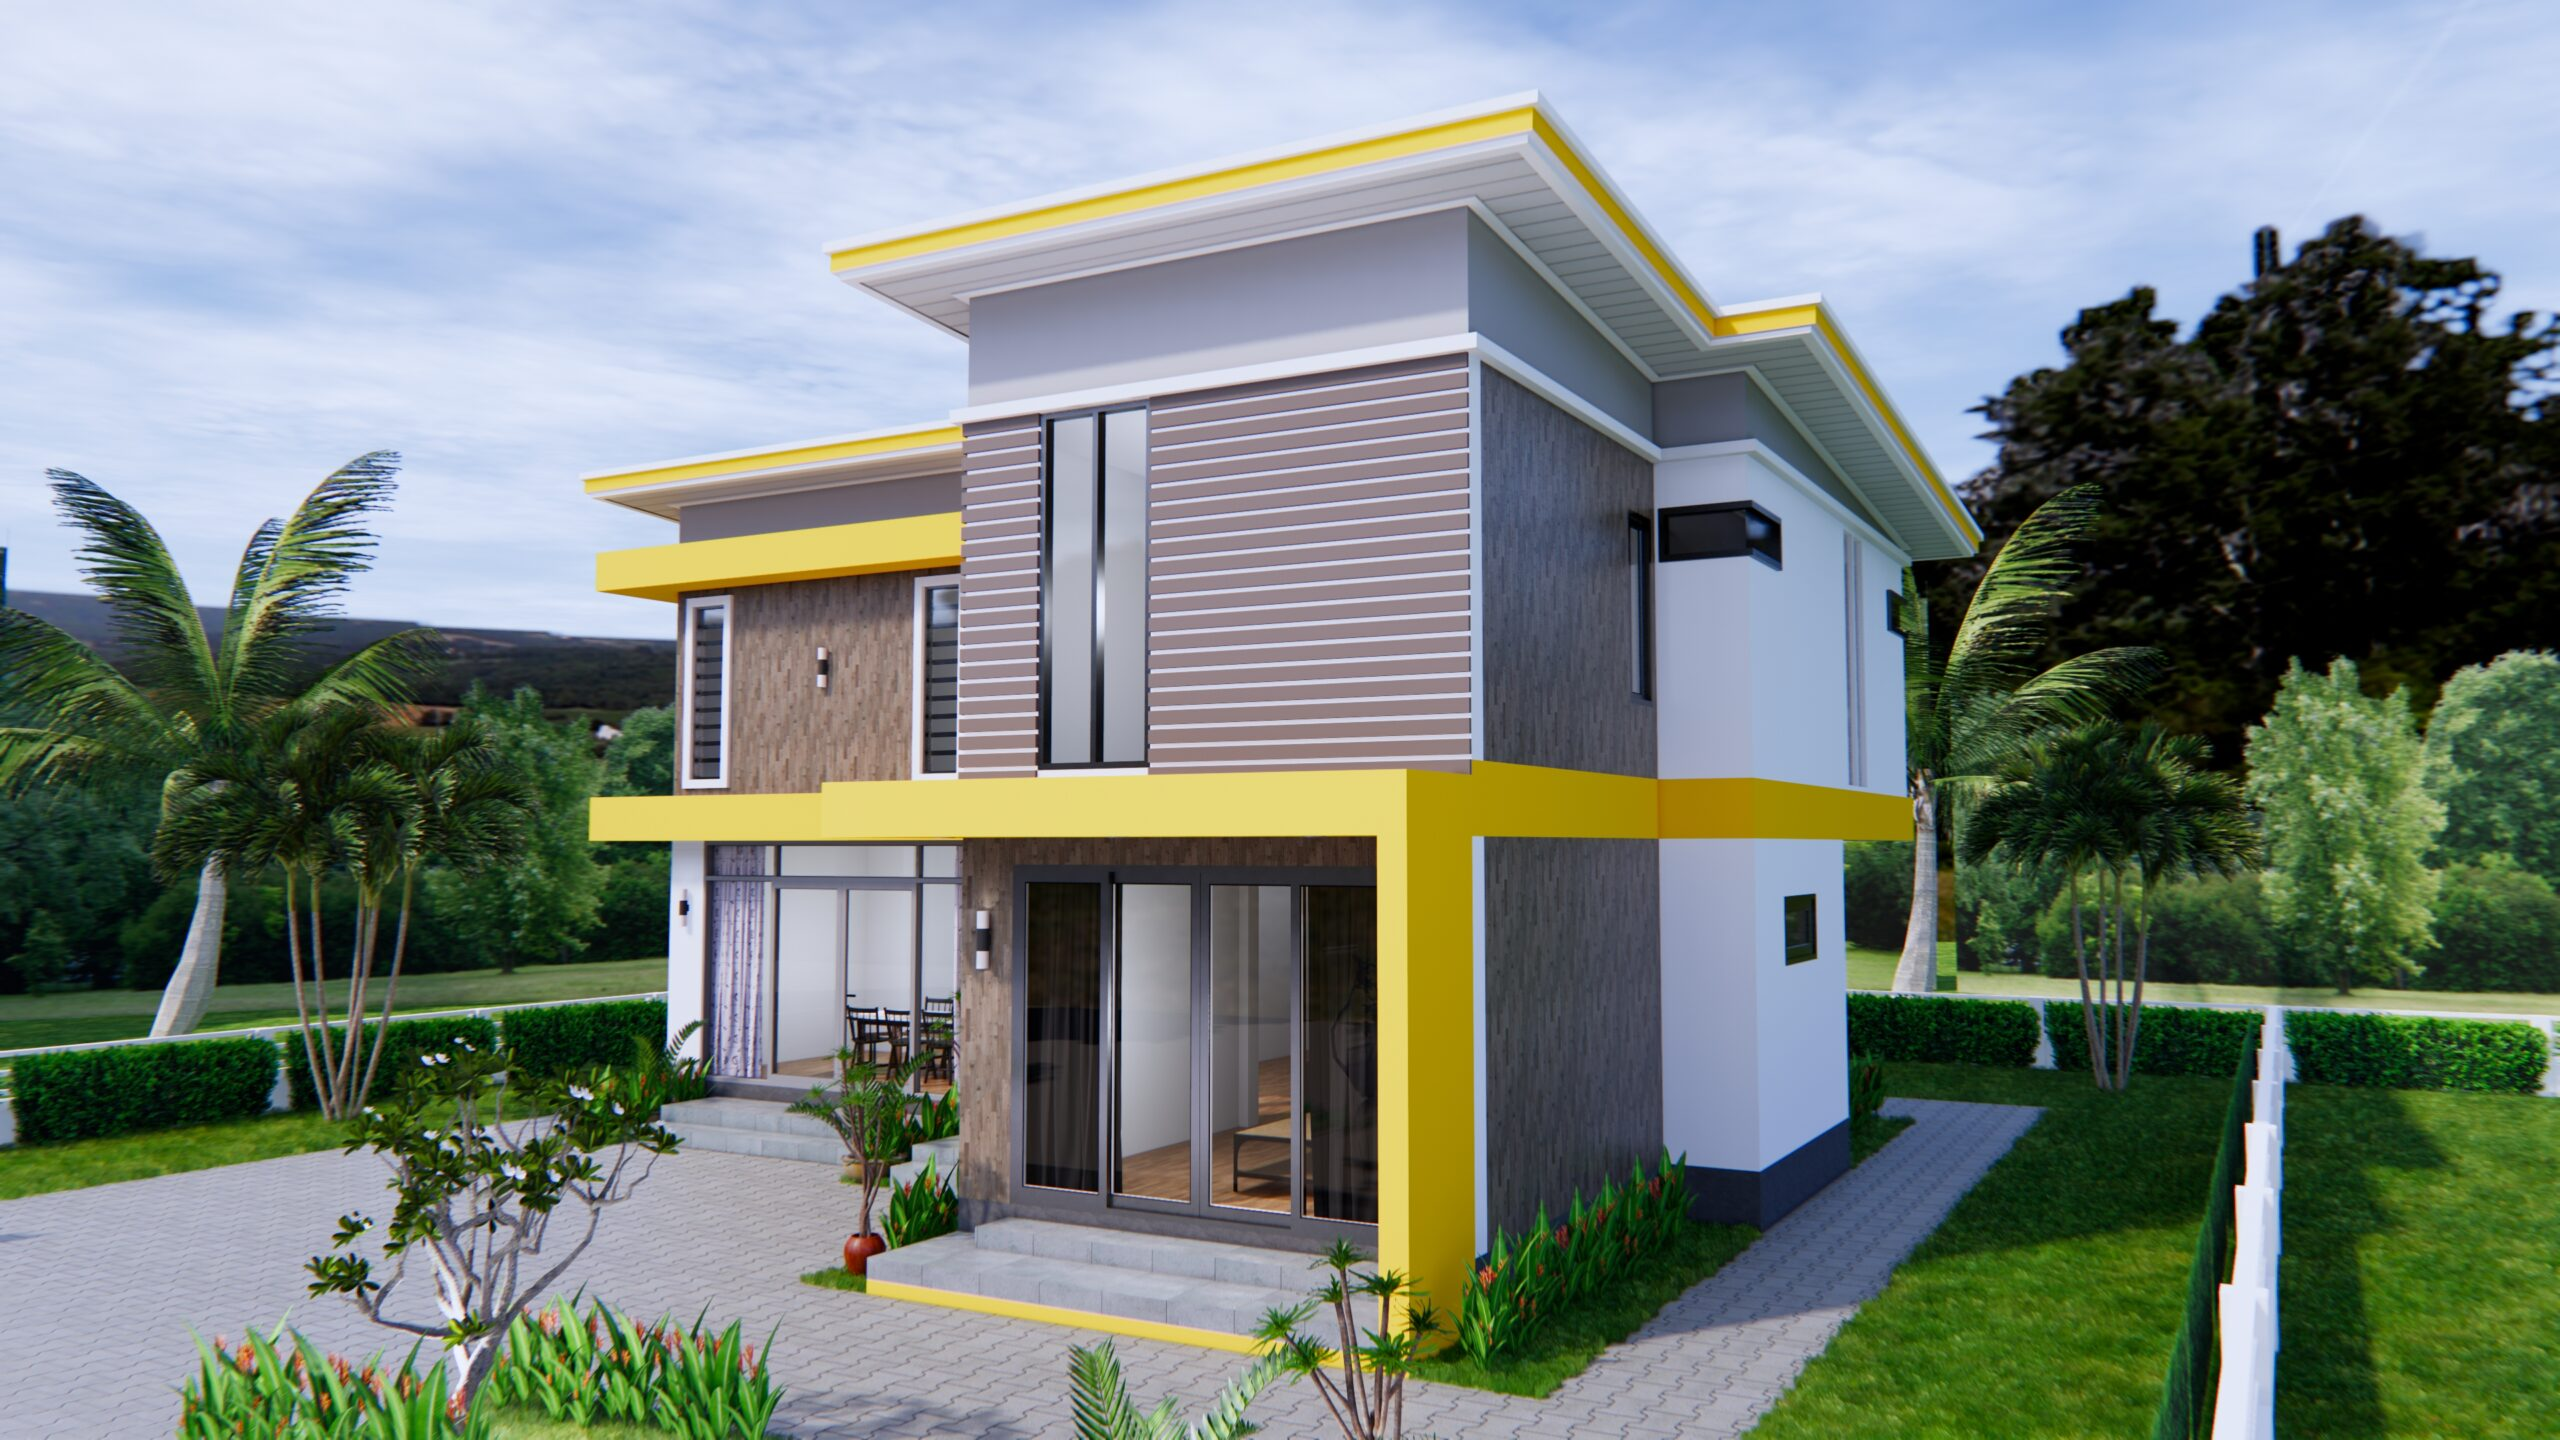 House Design 12.4x11 Meter 41x35 Feet 4 Beds 4